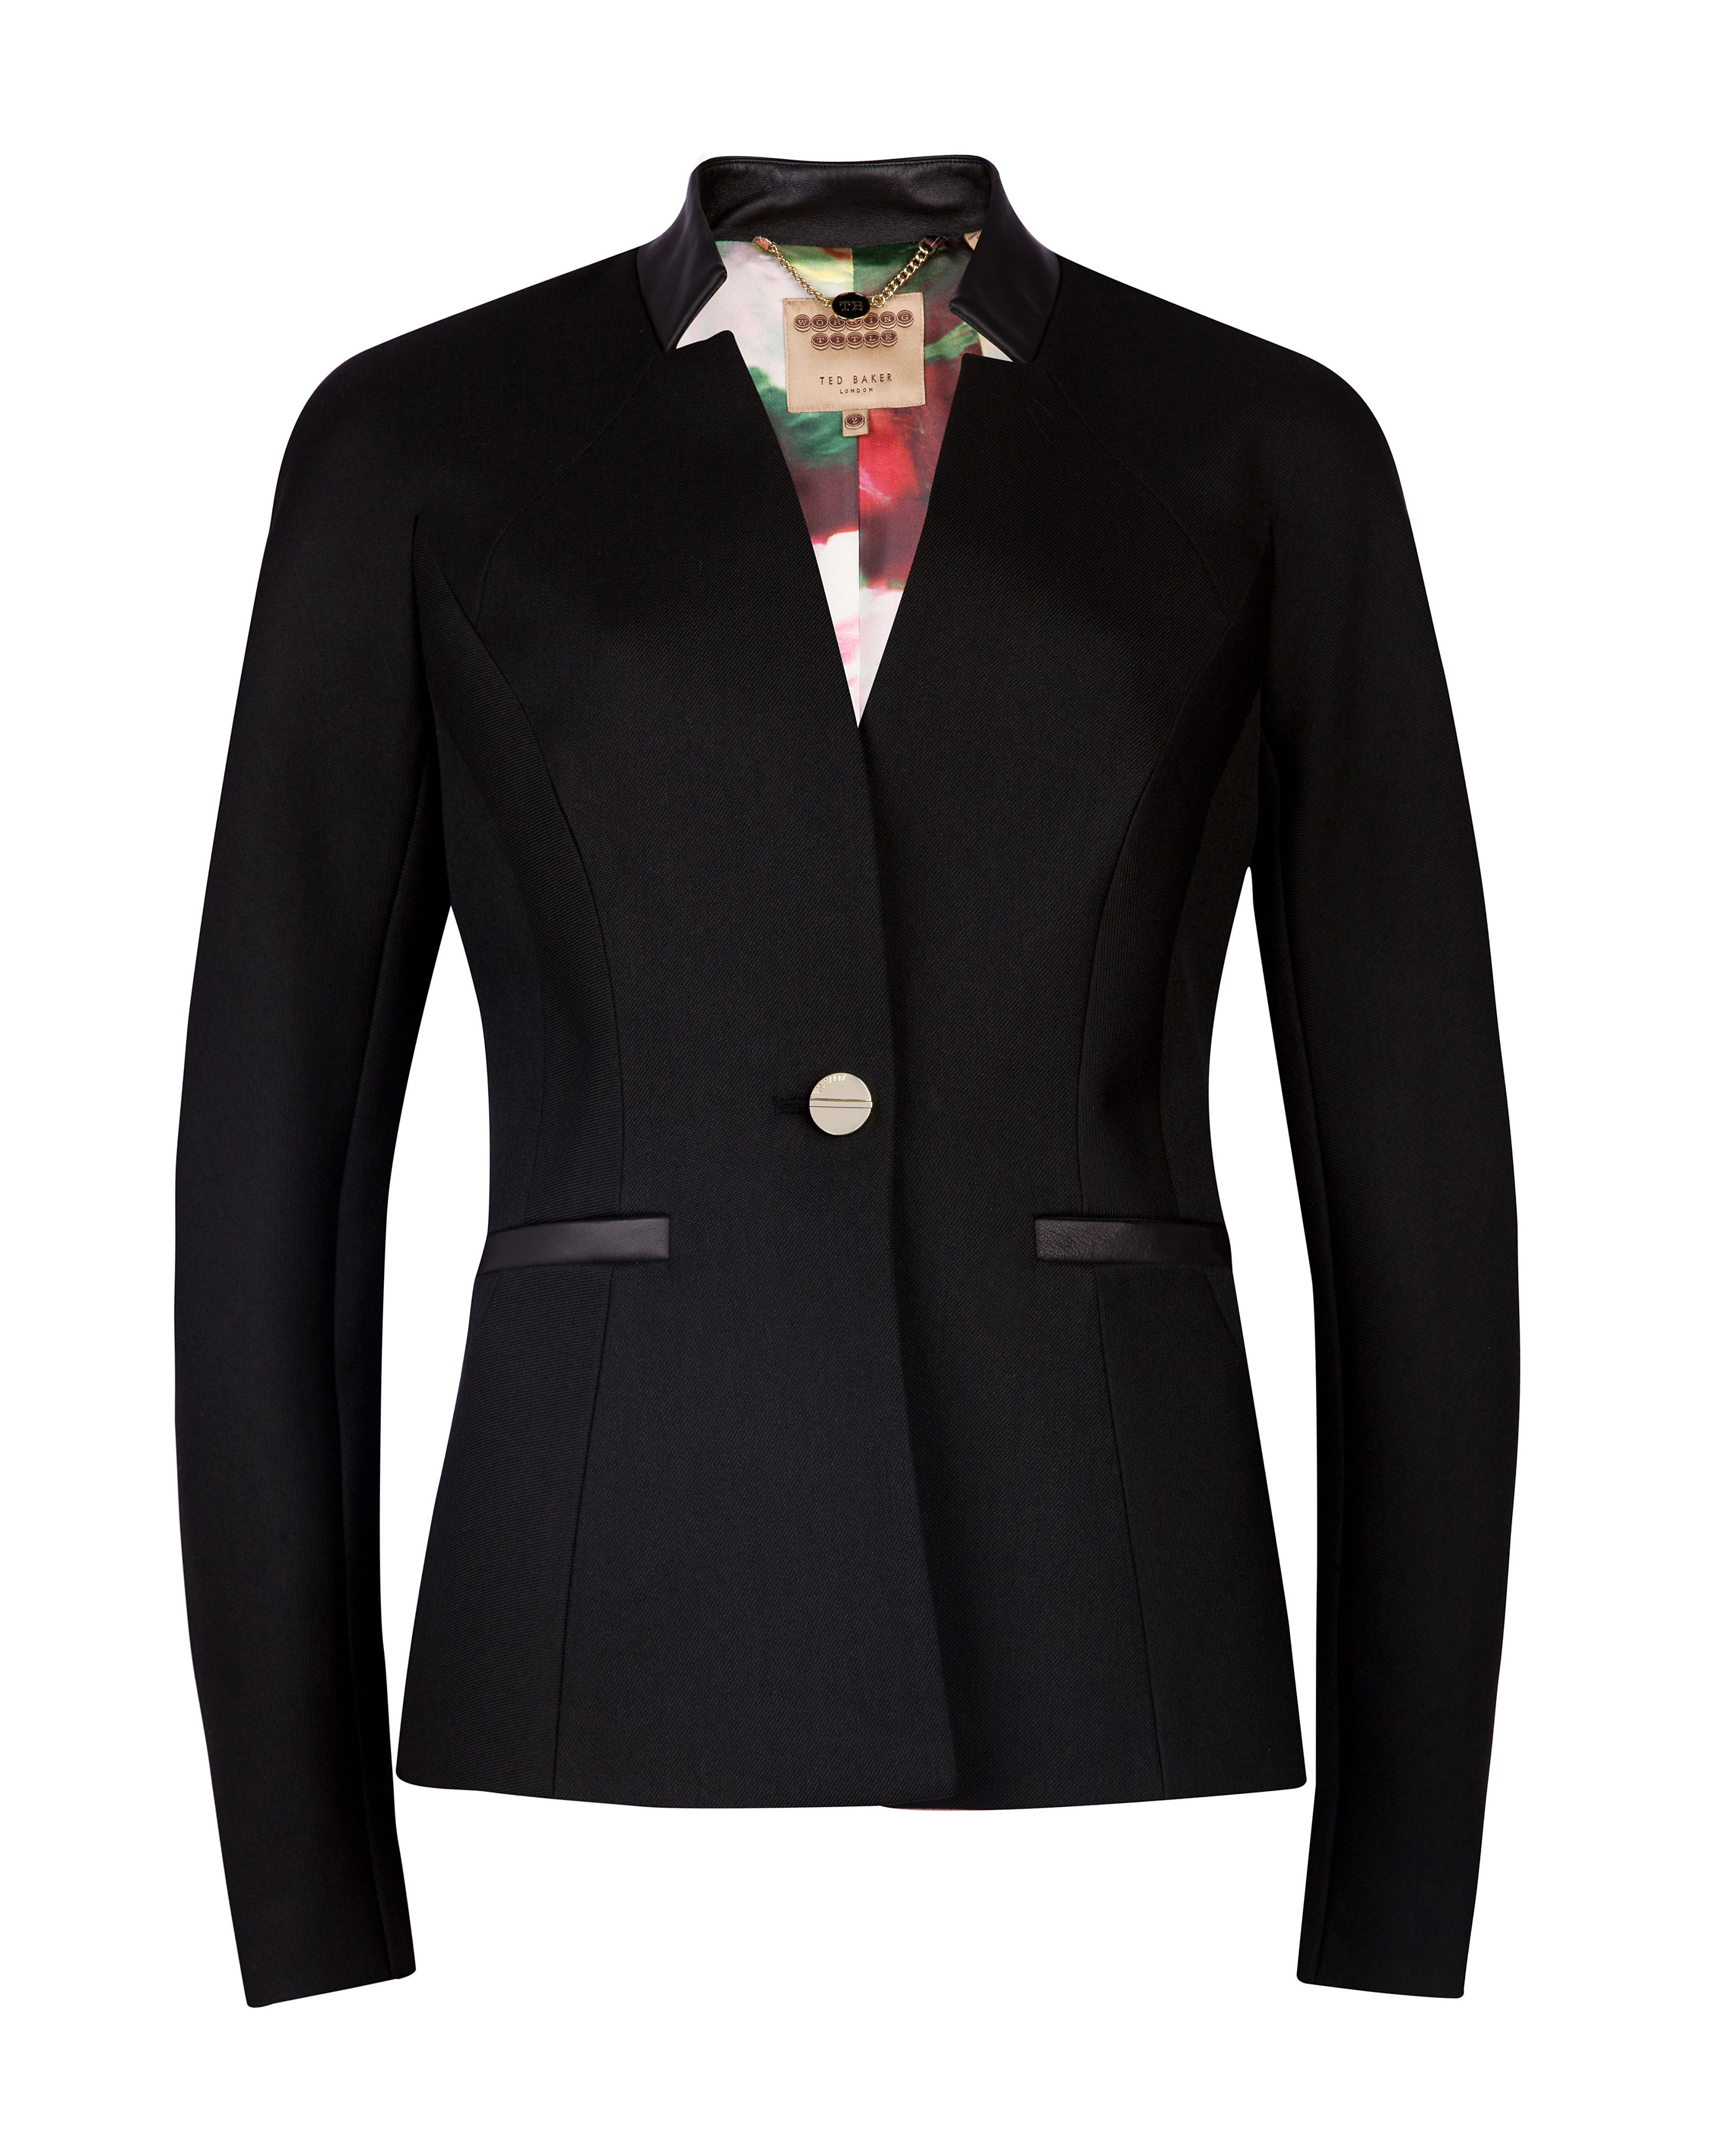 Nomelli leather trim blazer